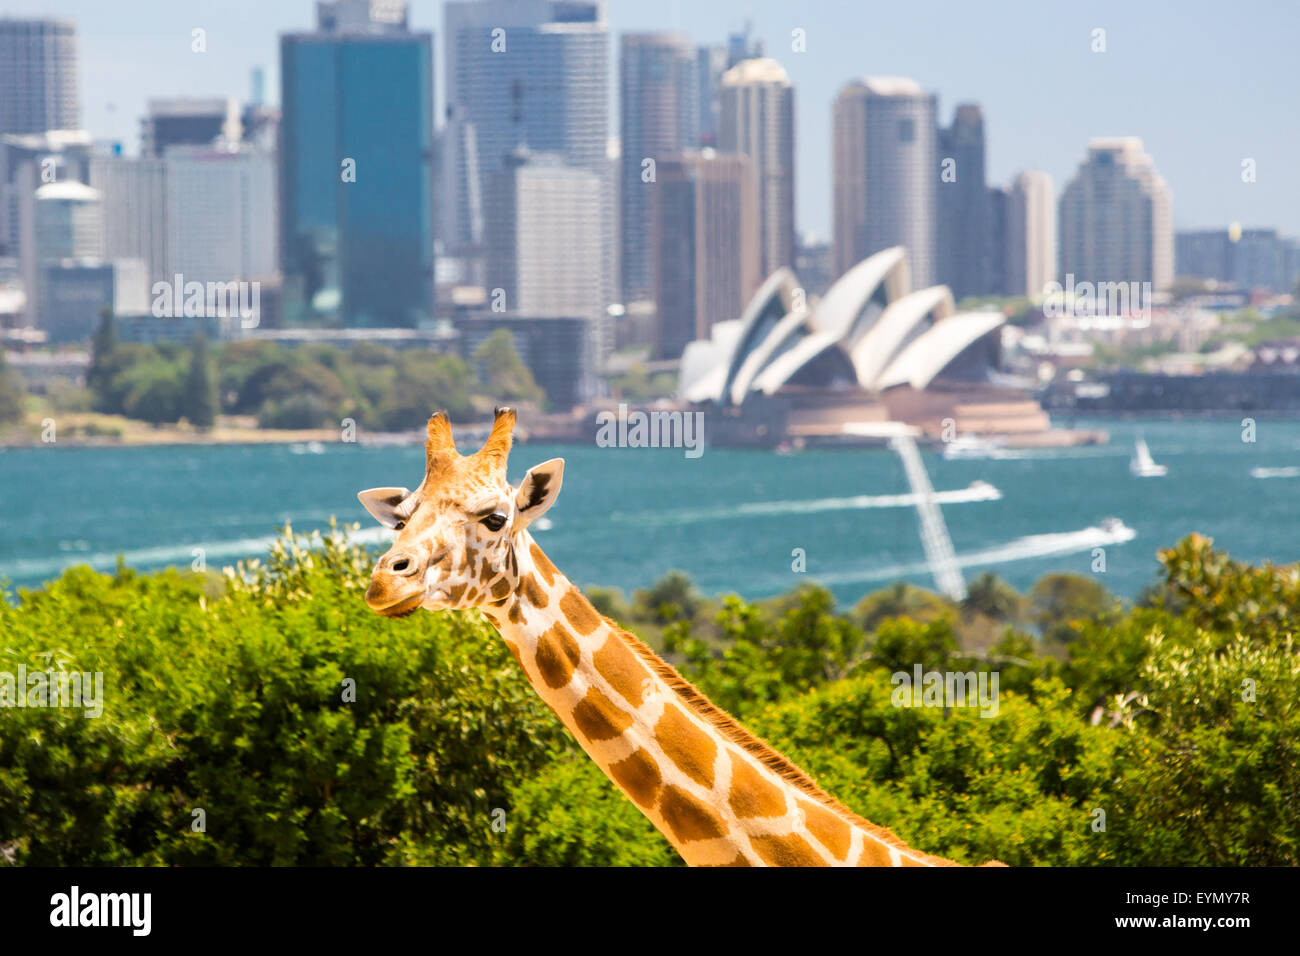 Giraffes at Taronga zoo overlook Sydney harbour and skyline on a clear summer's day in Sydney, Australia - Stock Image